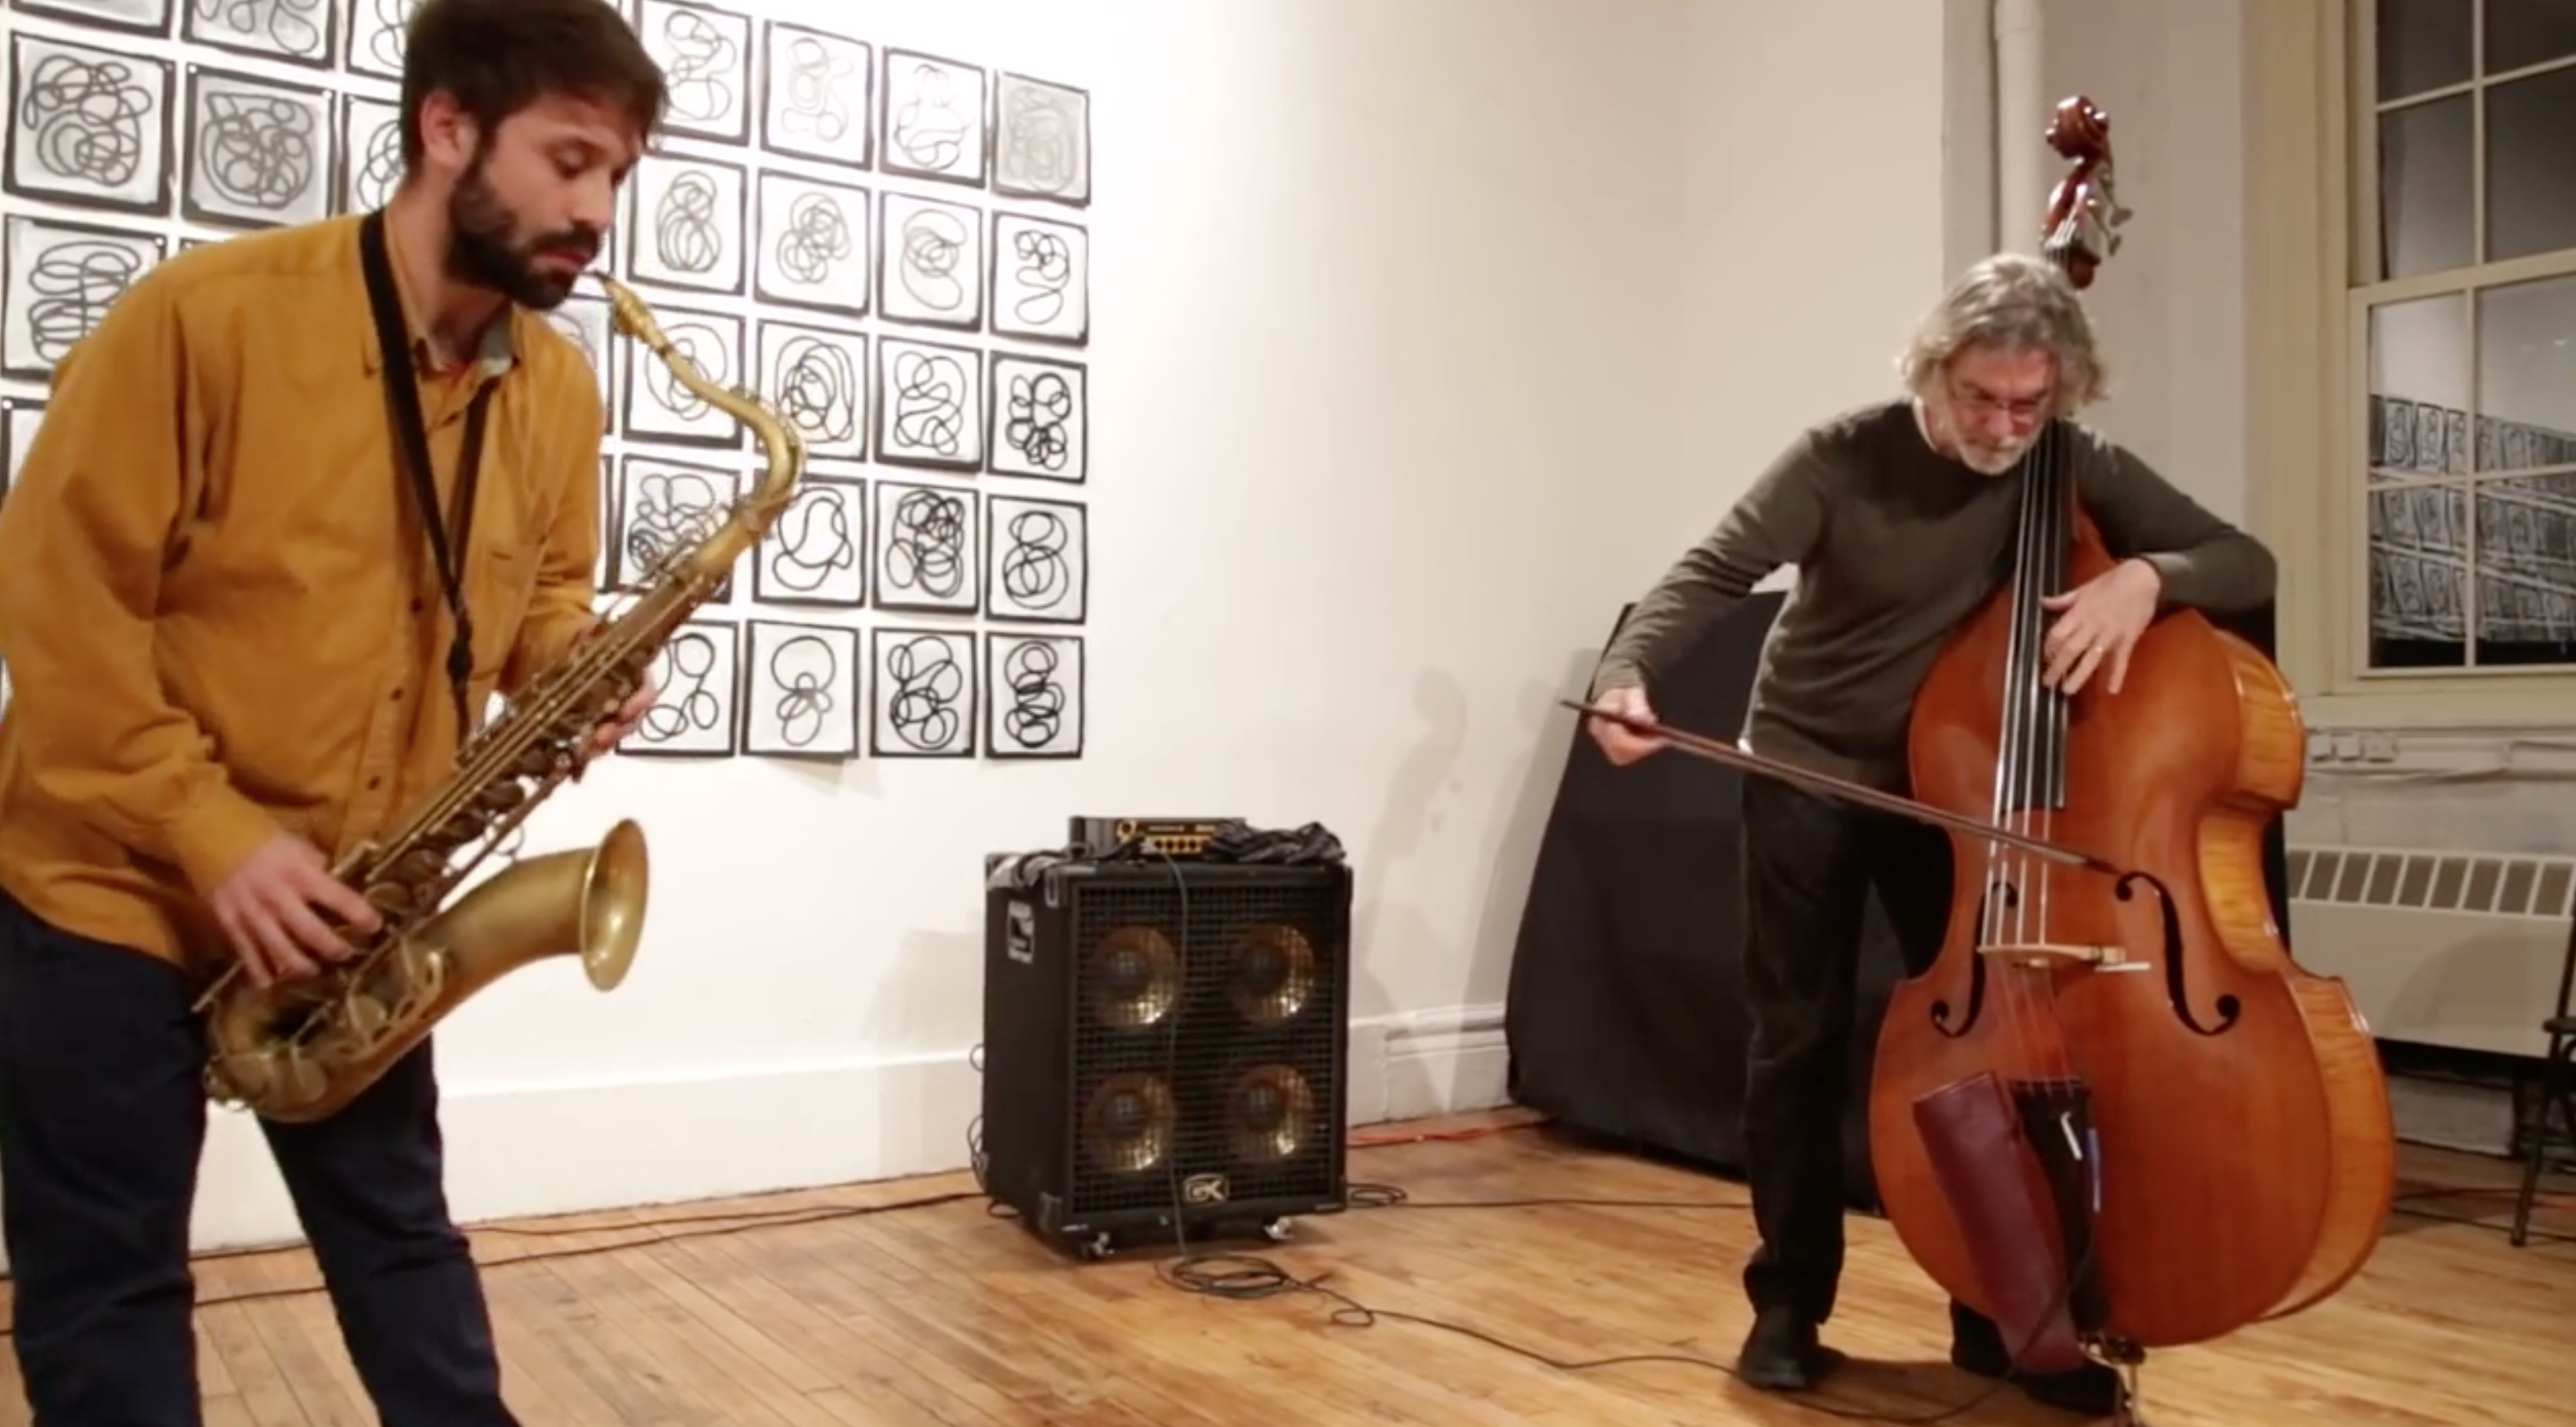 Joe Morris \ Abraham Mennen @ Arts For Art (NYC Free Jazz Summit) [Apr – 08]